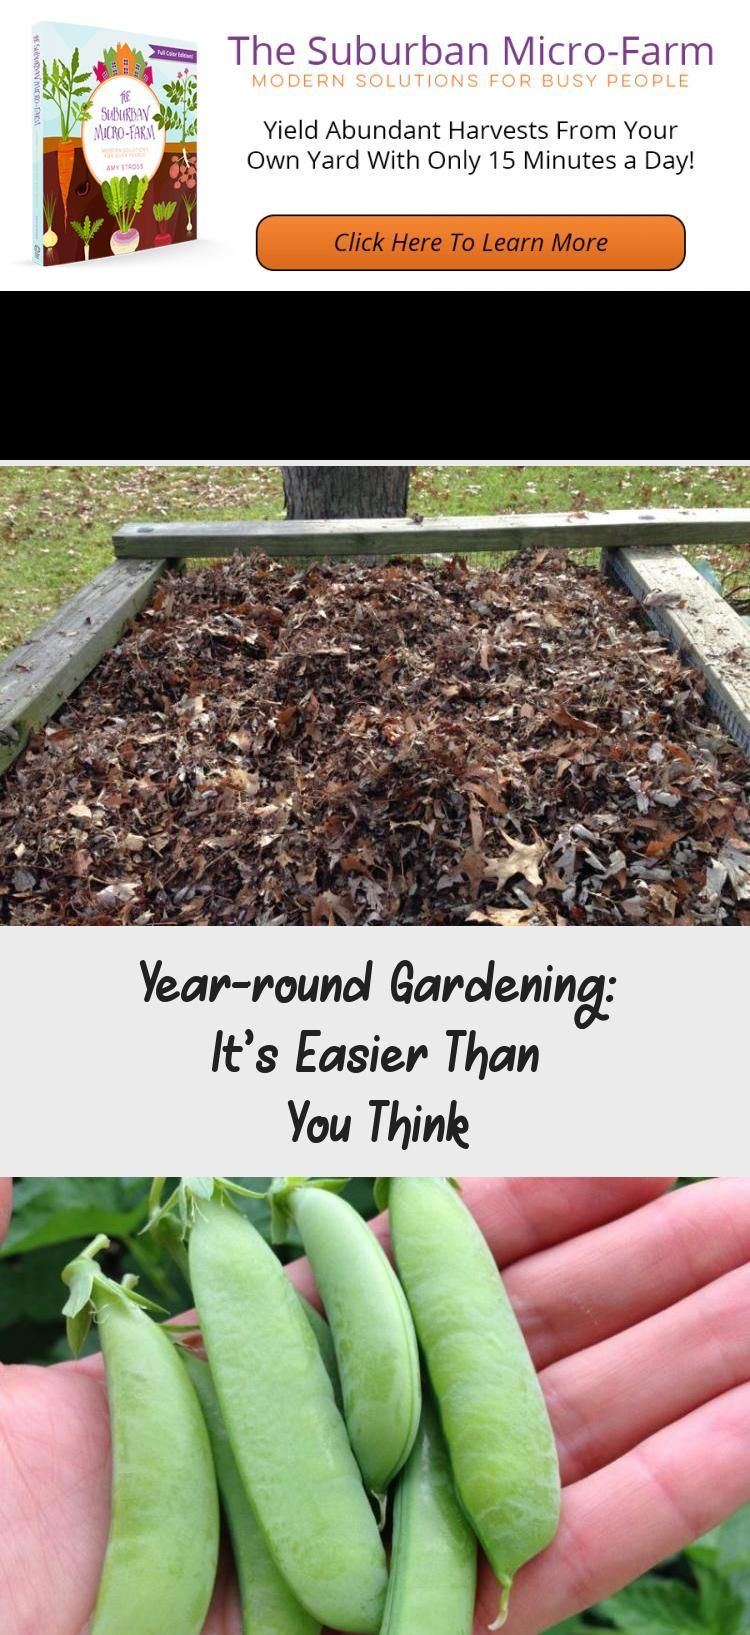 your harvest to all 12 months of the year with a yearround gardening plan Are you ready to take your garden to the next levelExtend your harvest to all 12 months of the y...